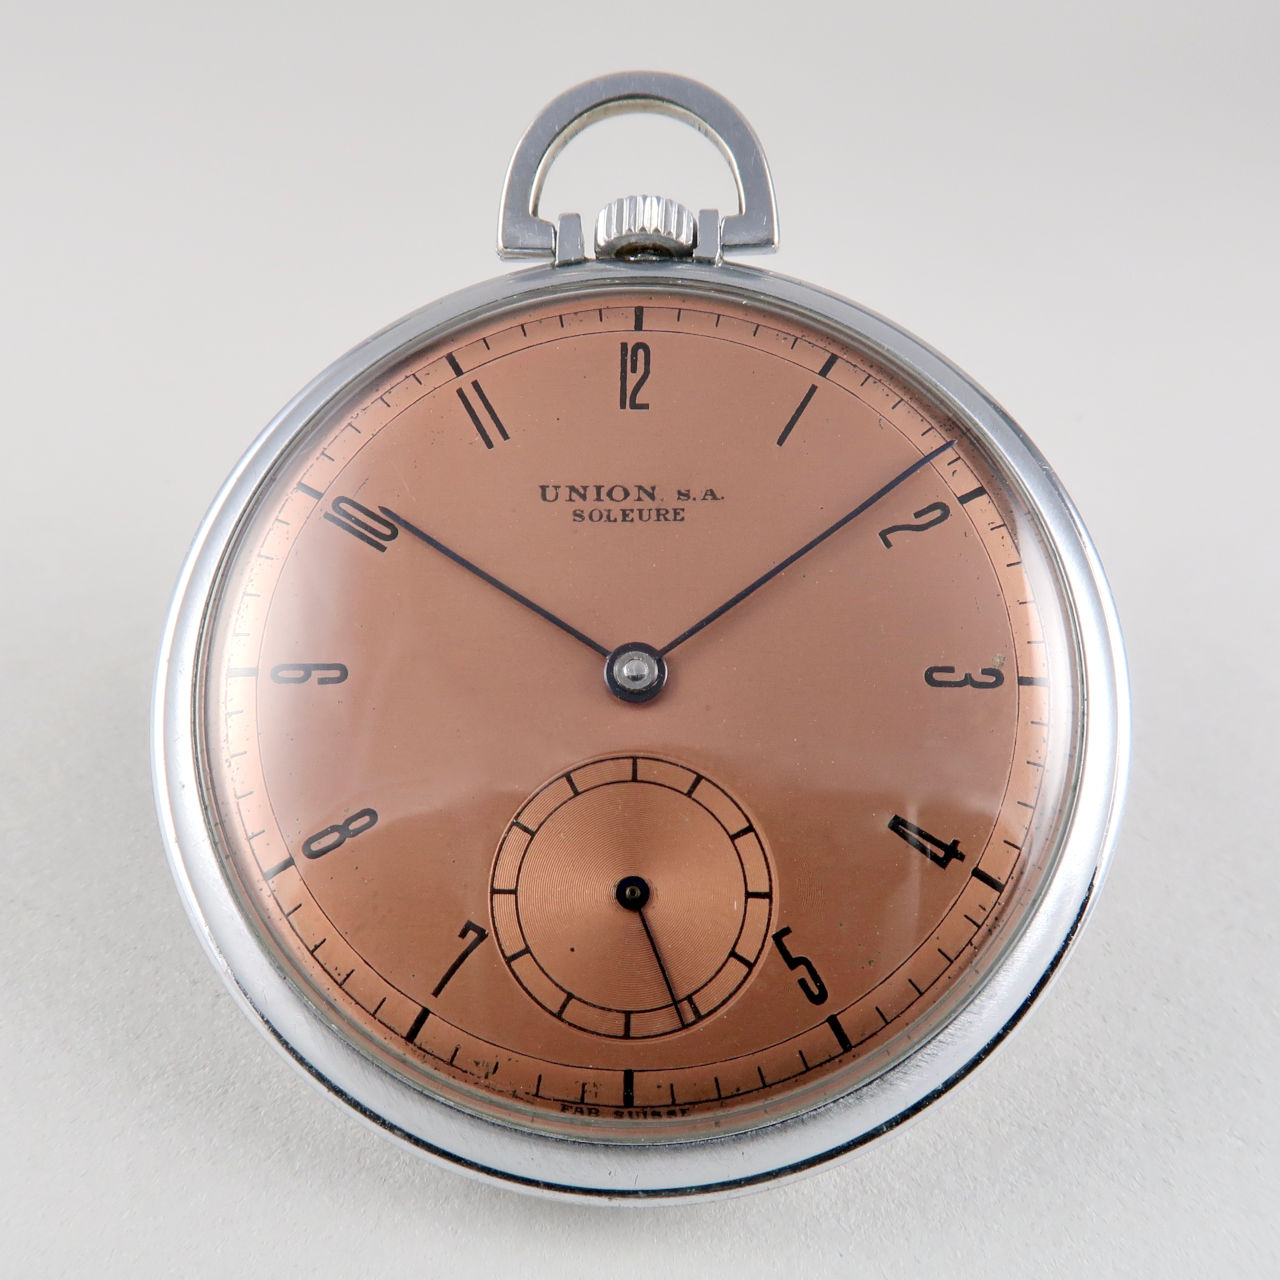 Union circa 1940 nickel chrome open-faced pocket watch